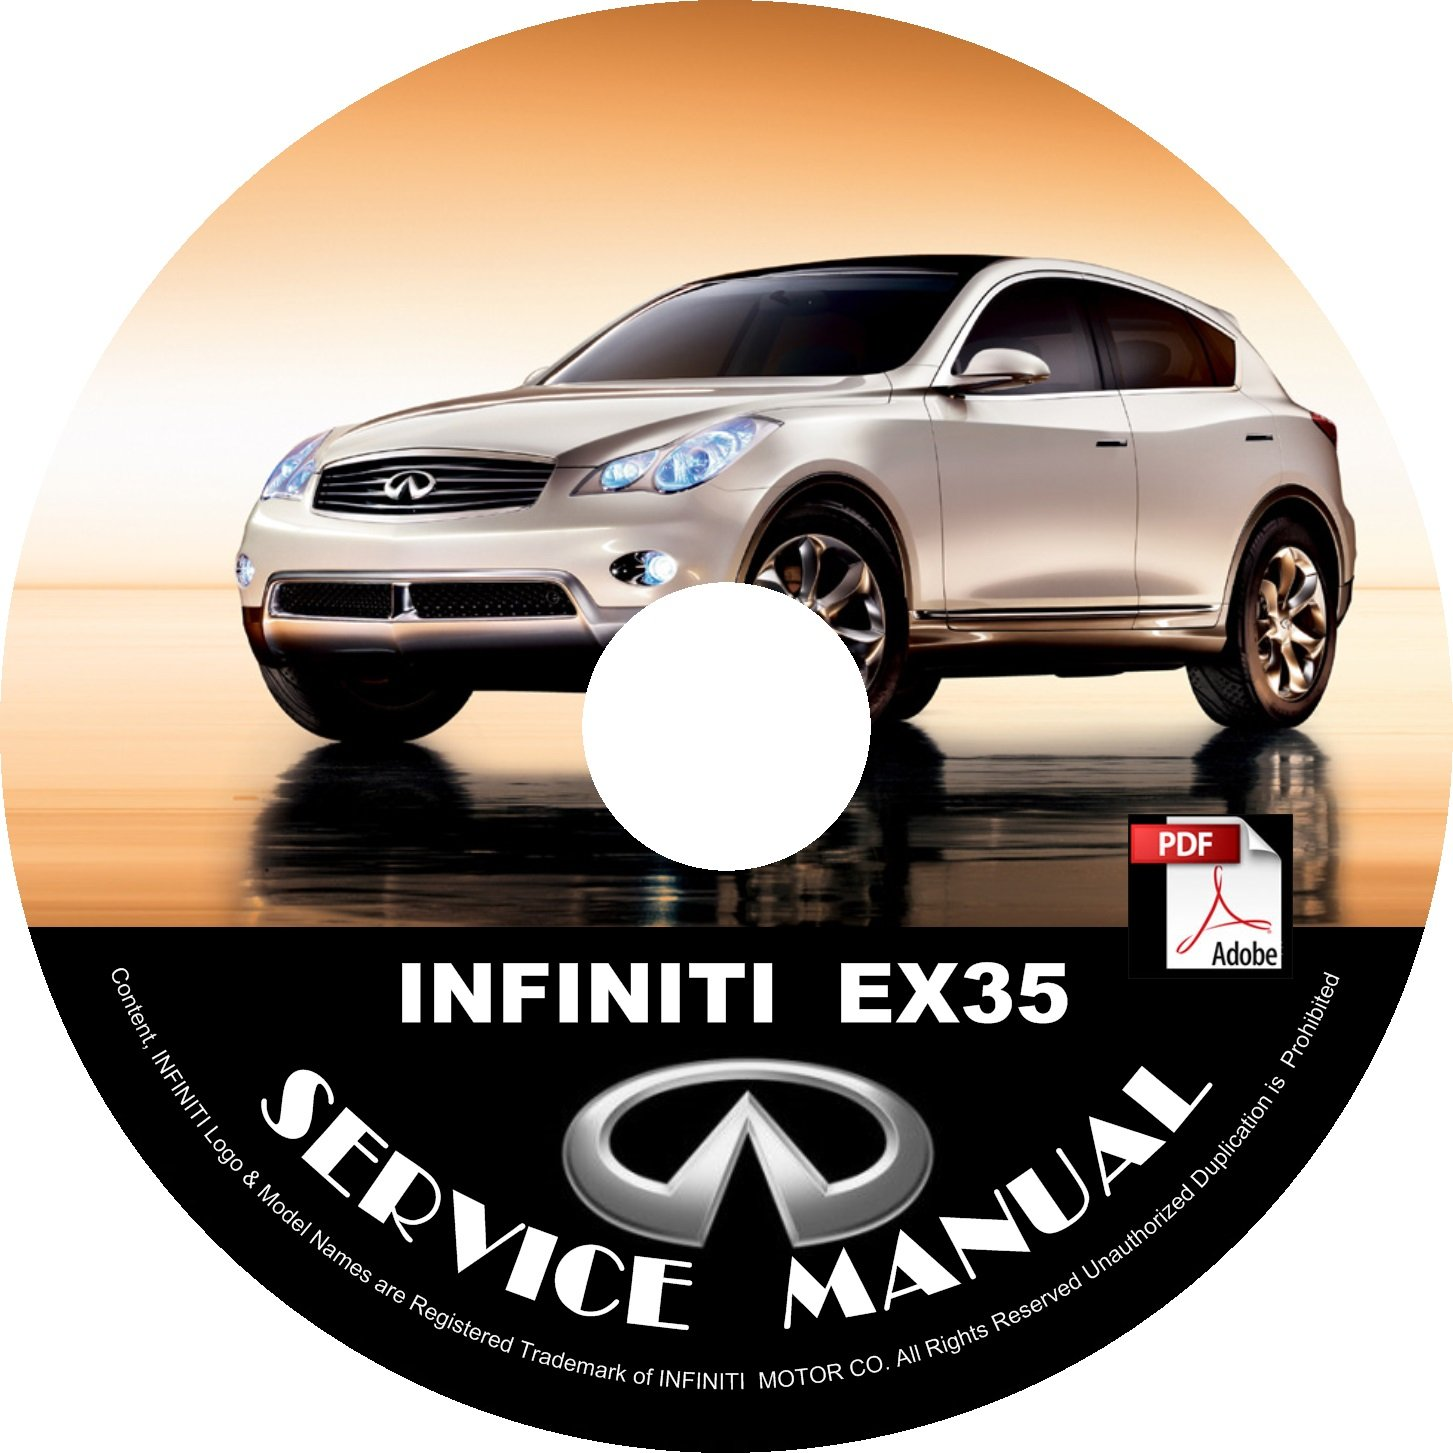 2009 09 Infiniti EX35 Factory Service Repair Shop Manual on CD